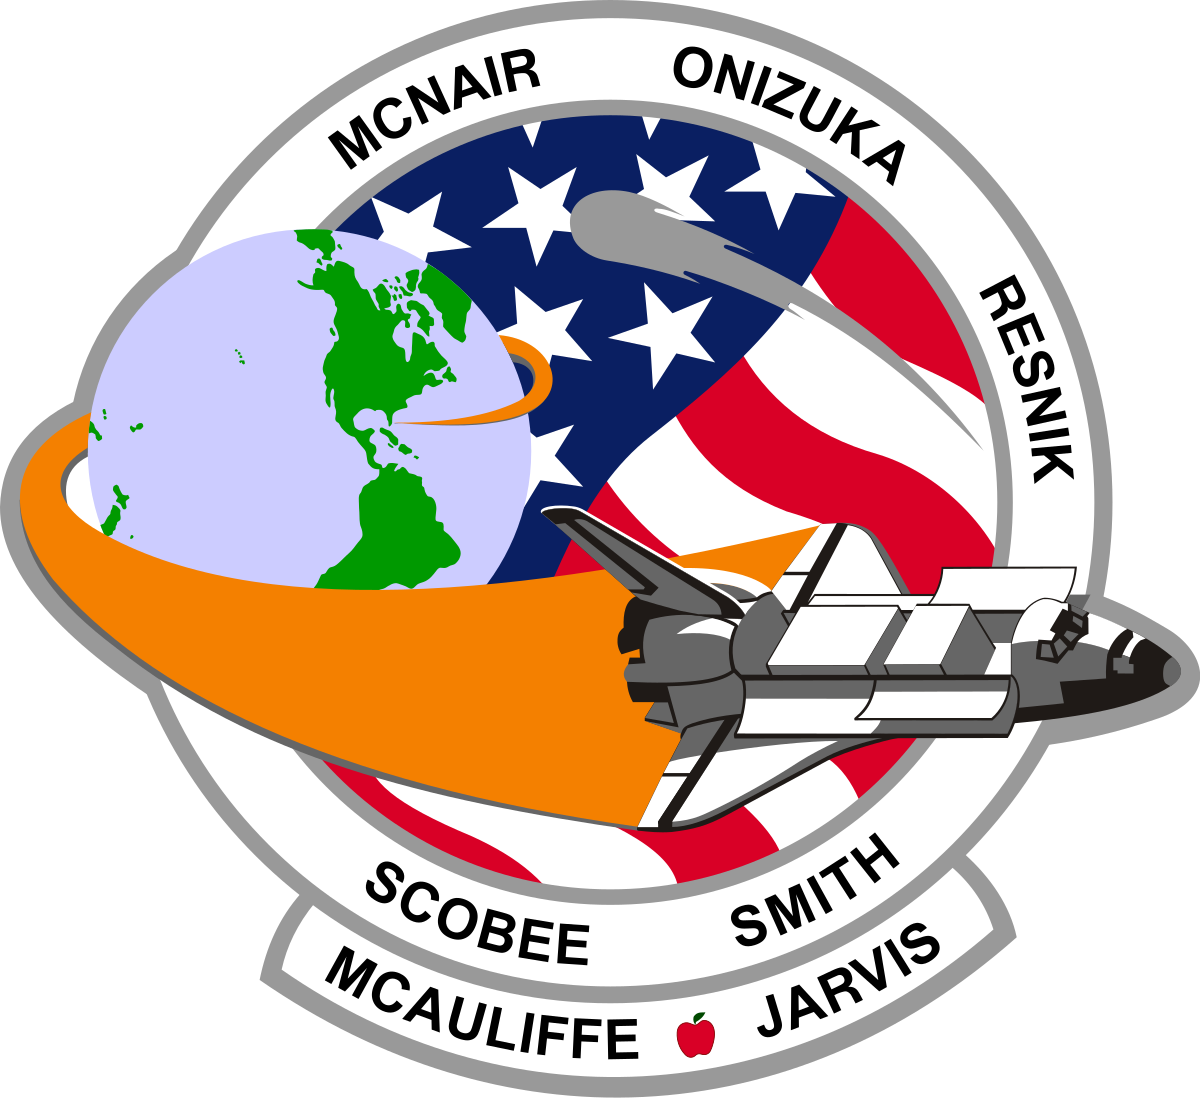 Challenger flight 51 l mission patch